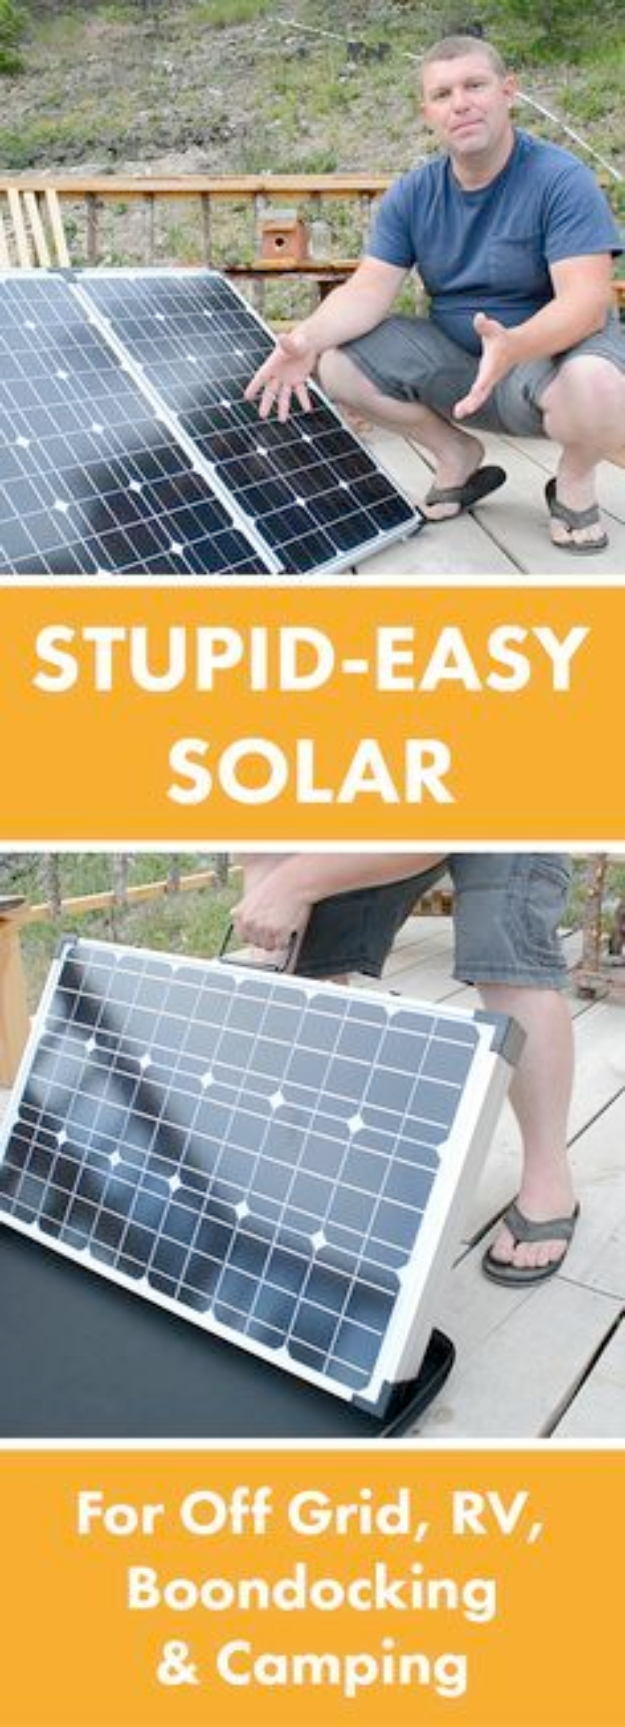 DIY Solar Powered Projects - Easy Portable Solar Panels - Easy Solar Crafts and DYI Ideas for Making Solar Power Things You Can Use To Save Energy - Step by Step Tutorials for Making Things Without Batteries - DIY Projects and Crafts for Men and Women